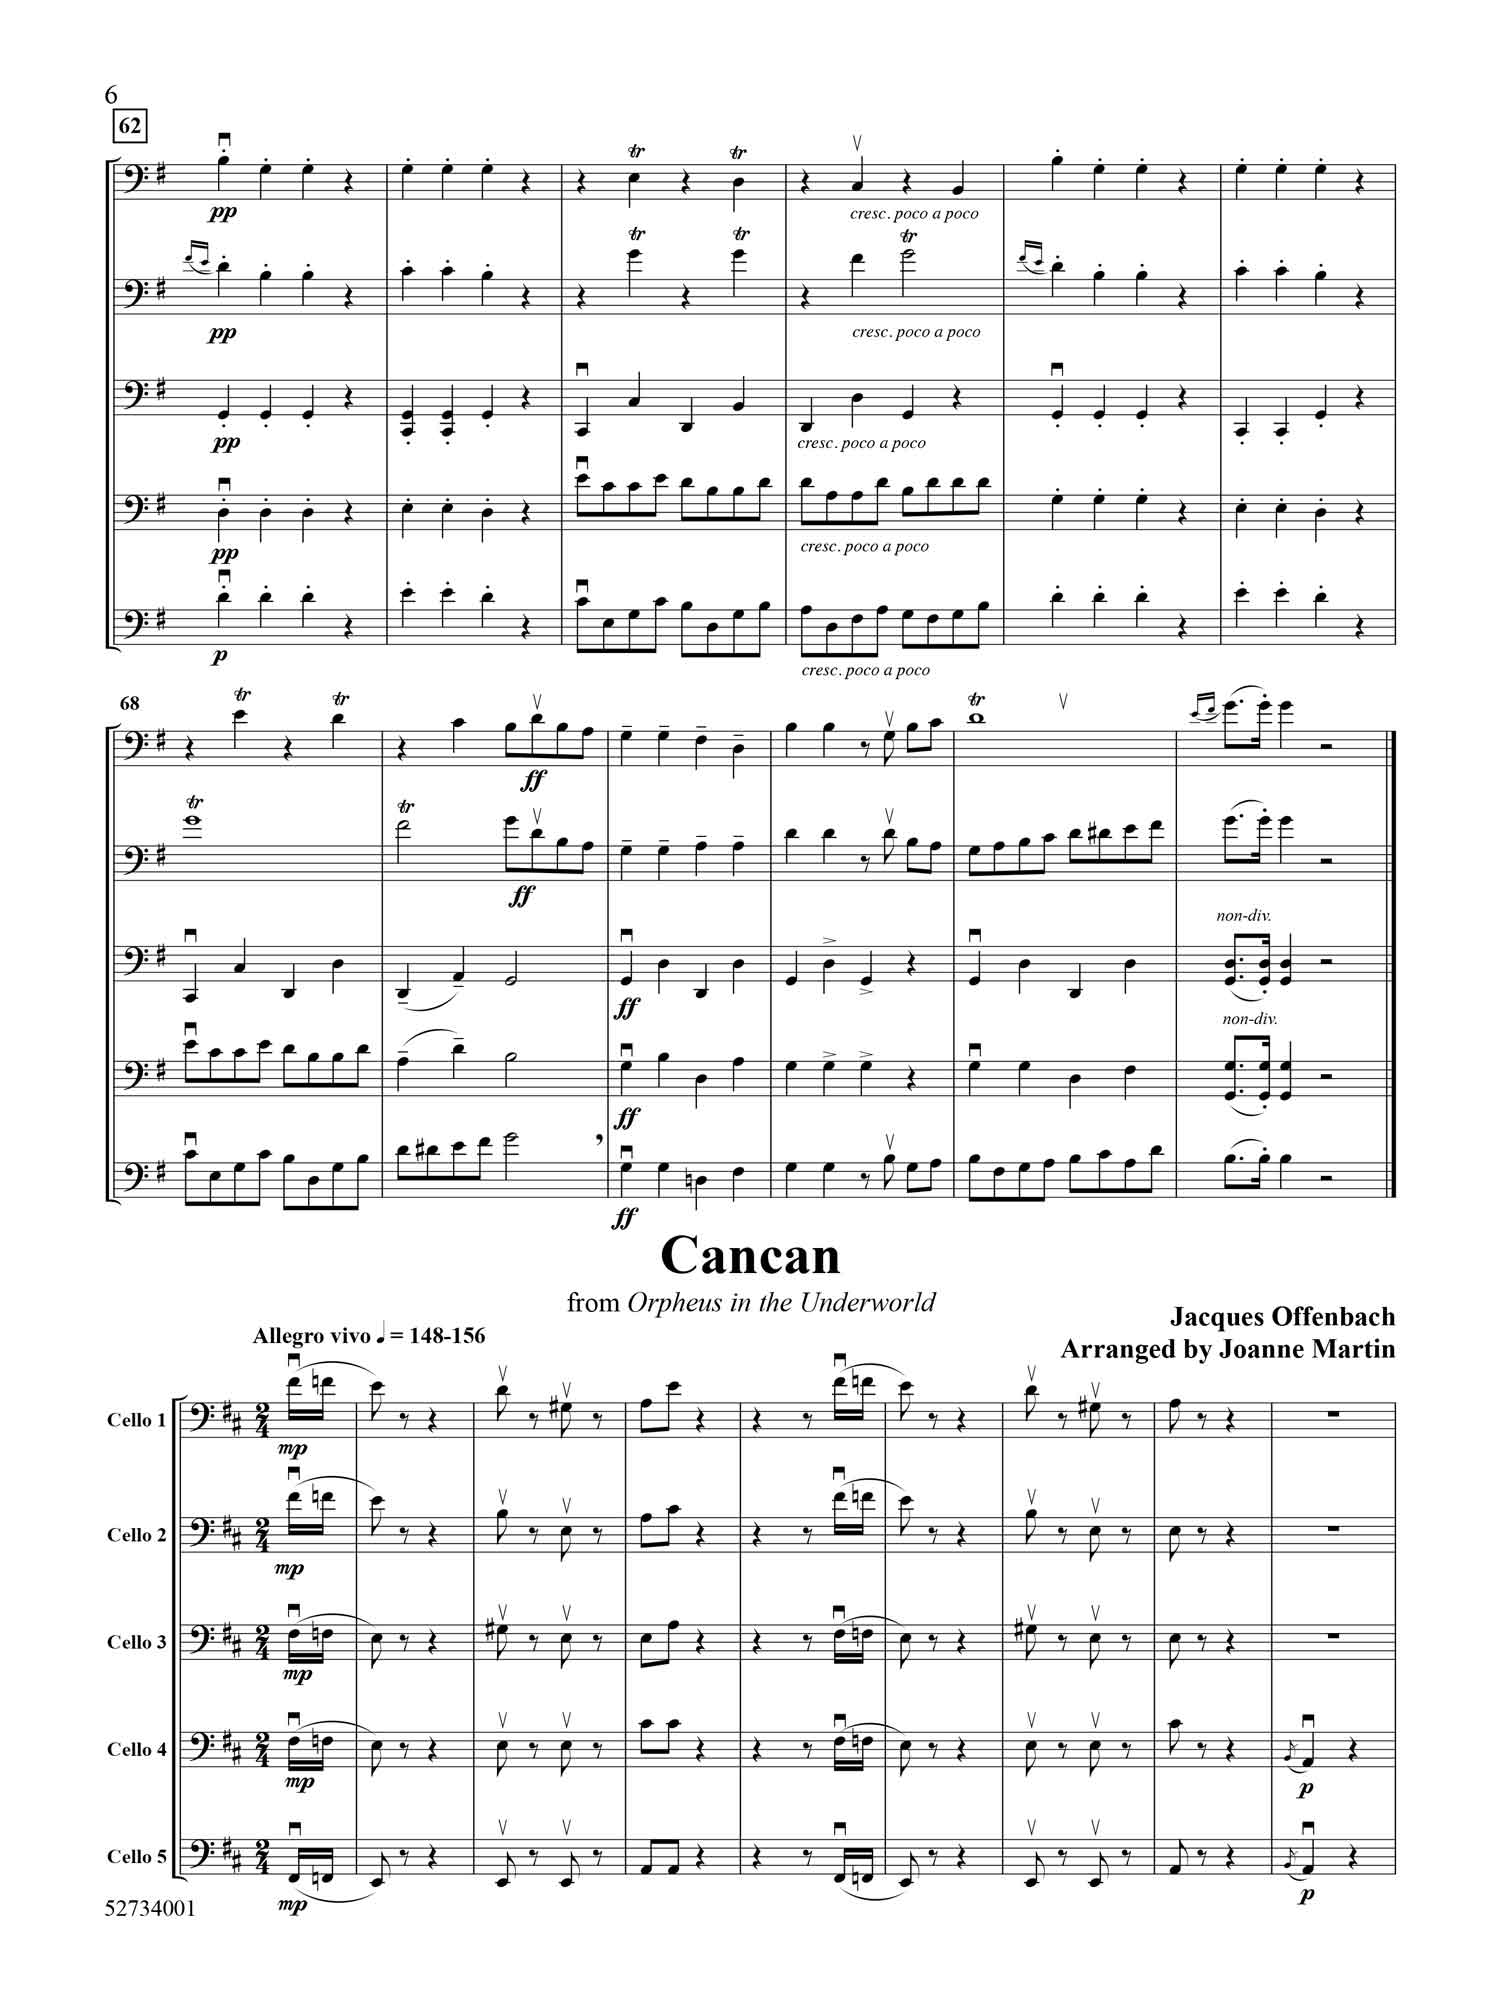 rondeau-des-metamorphoses-cancan-cello-quintet-score3.jpg